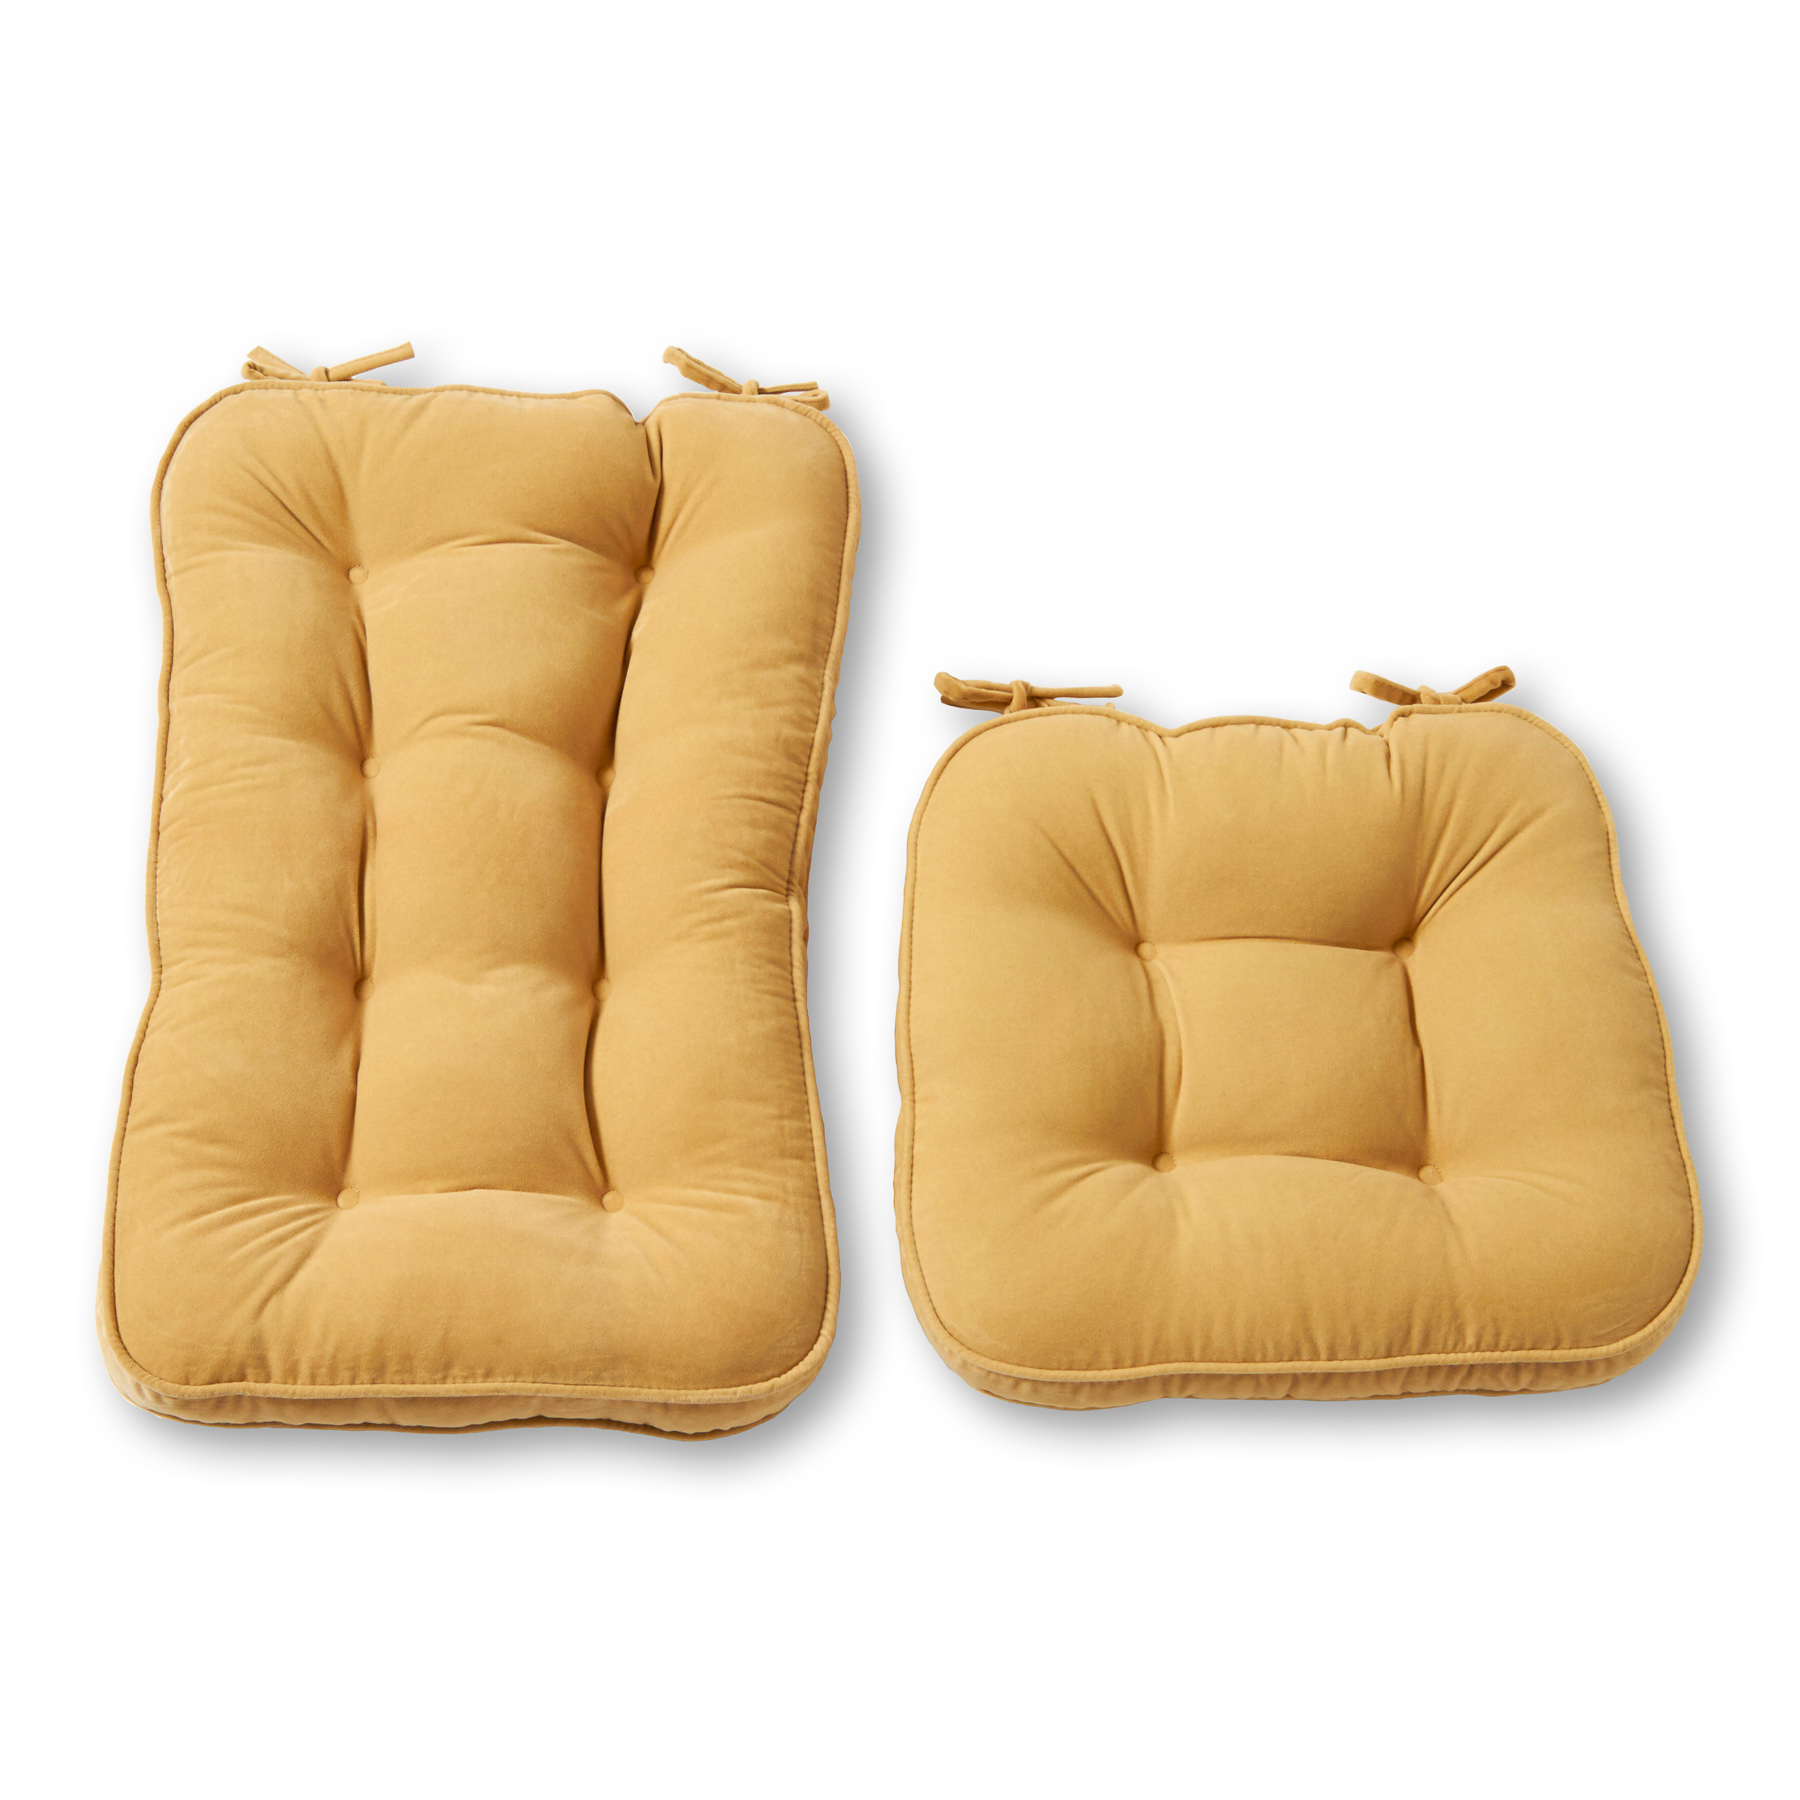 Delicieux Greendale Home Fashions Hyatt Jumbo Rocking Chair Cushion Set